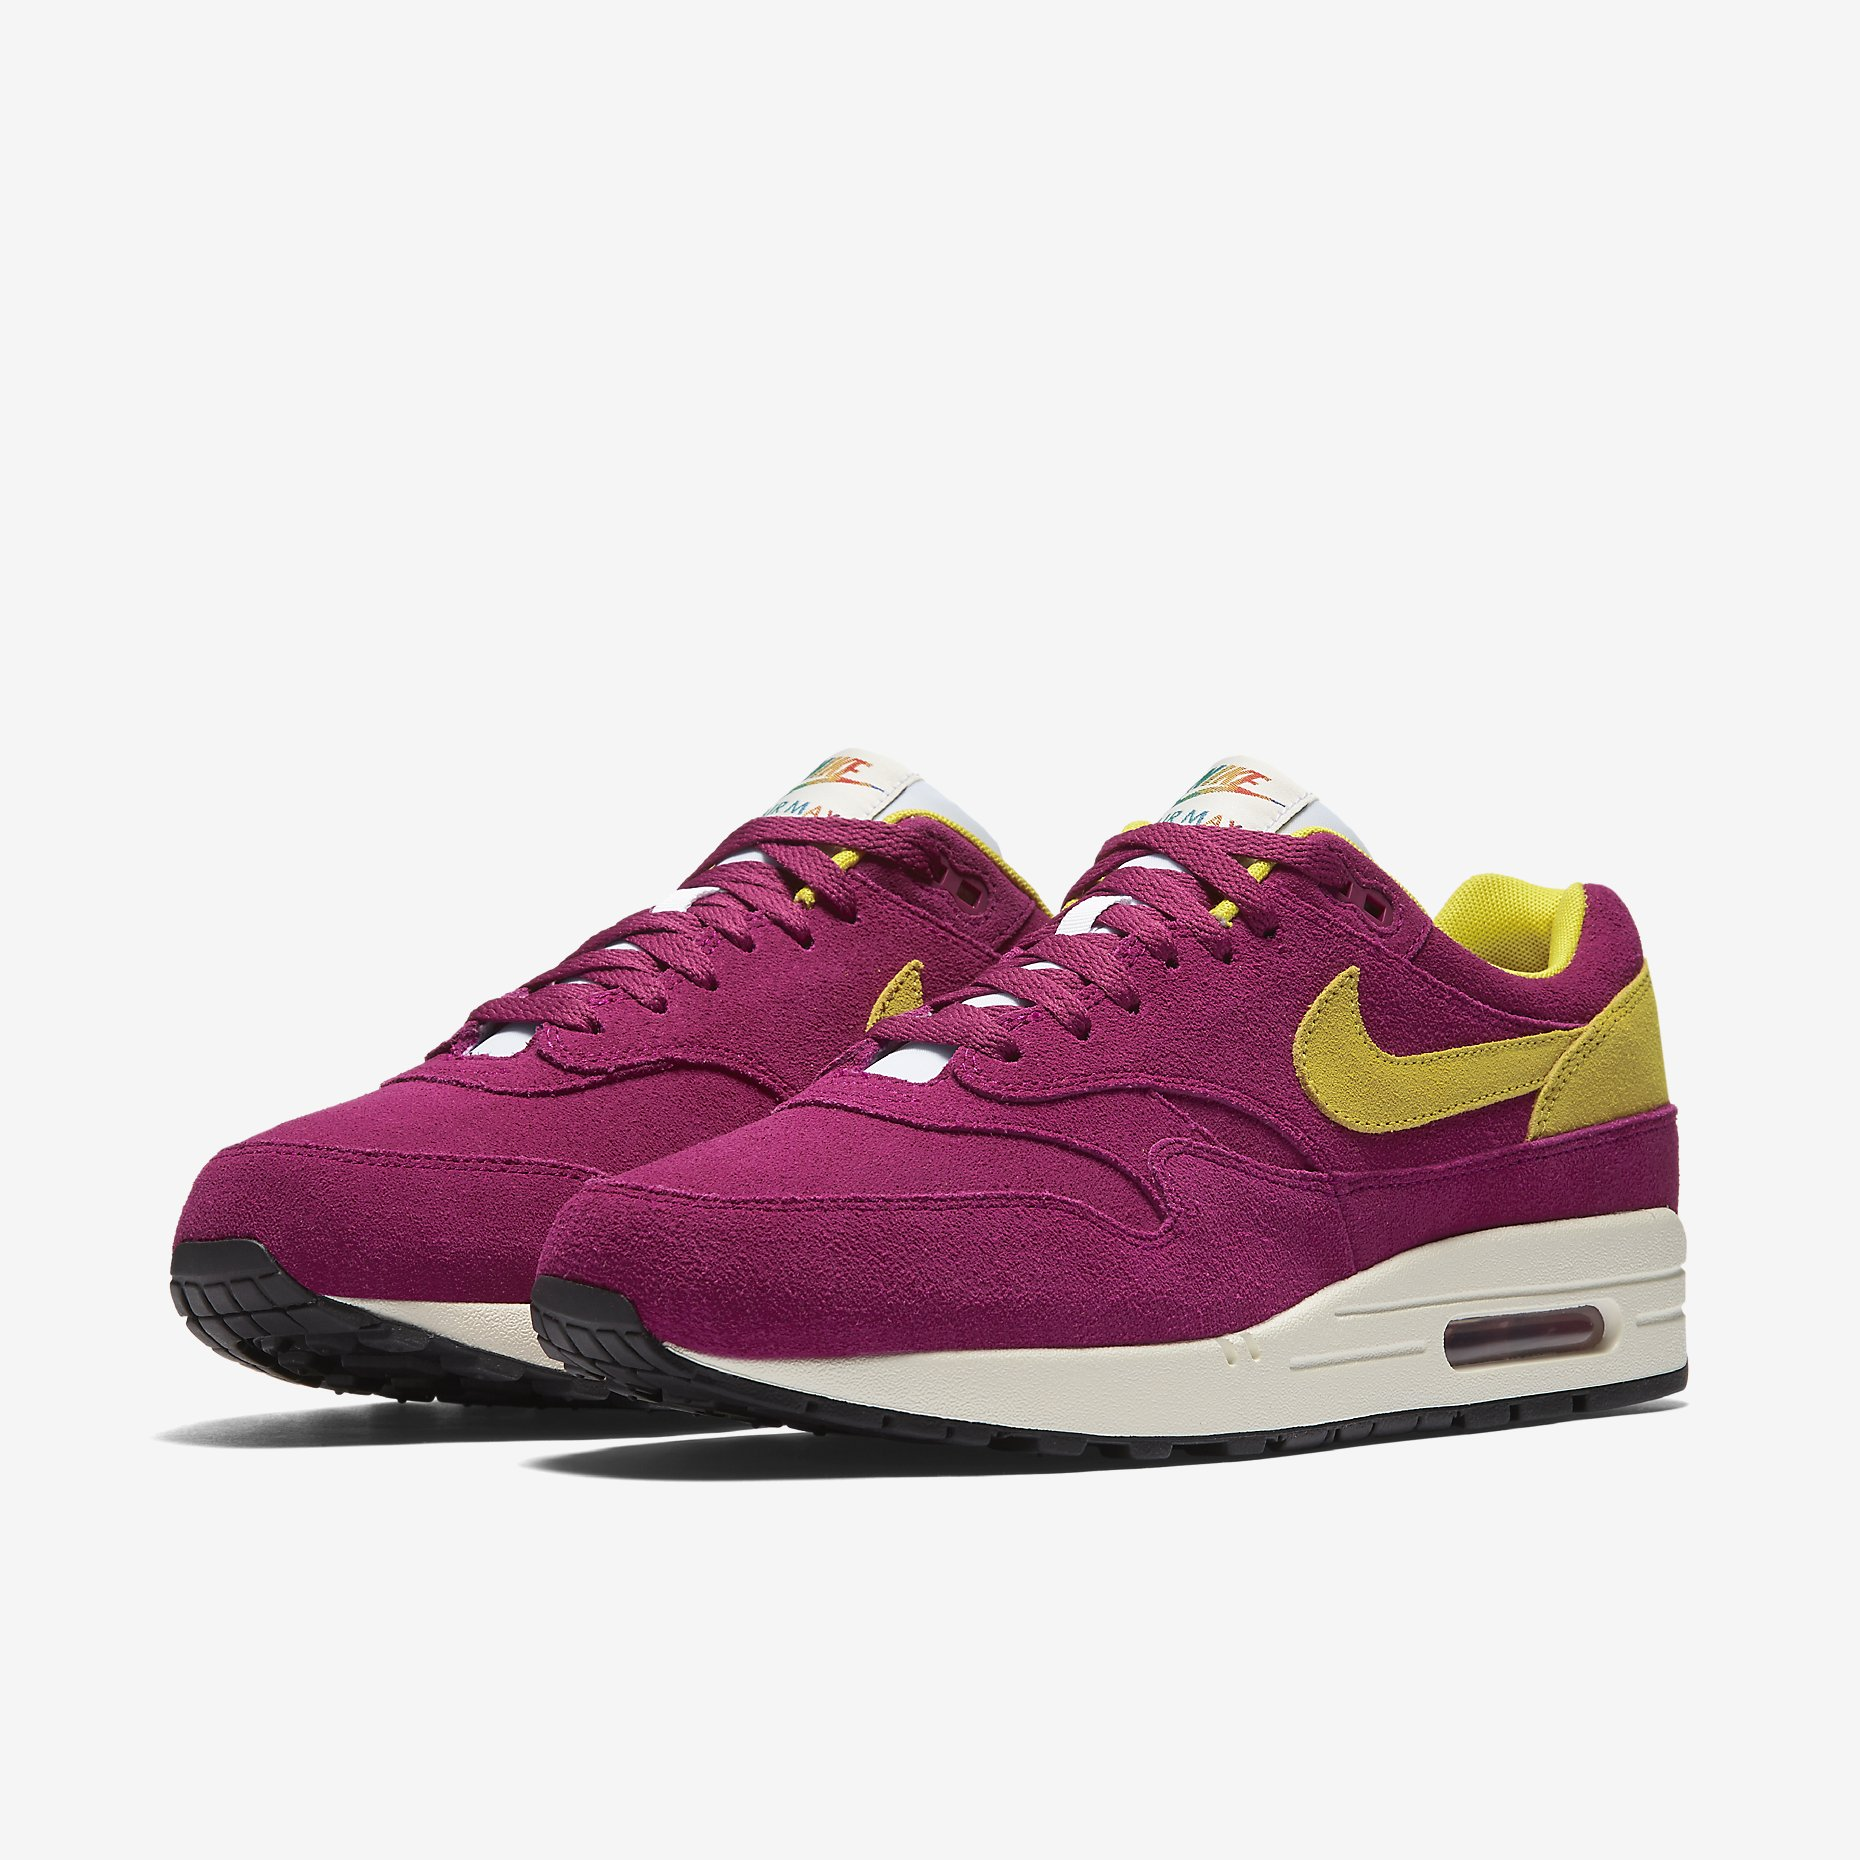 Nike Air Max 1 Dynamic Berry 875844 500 1